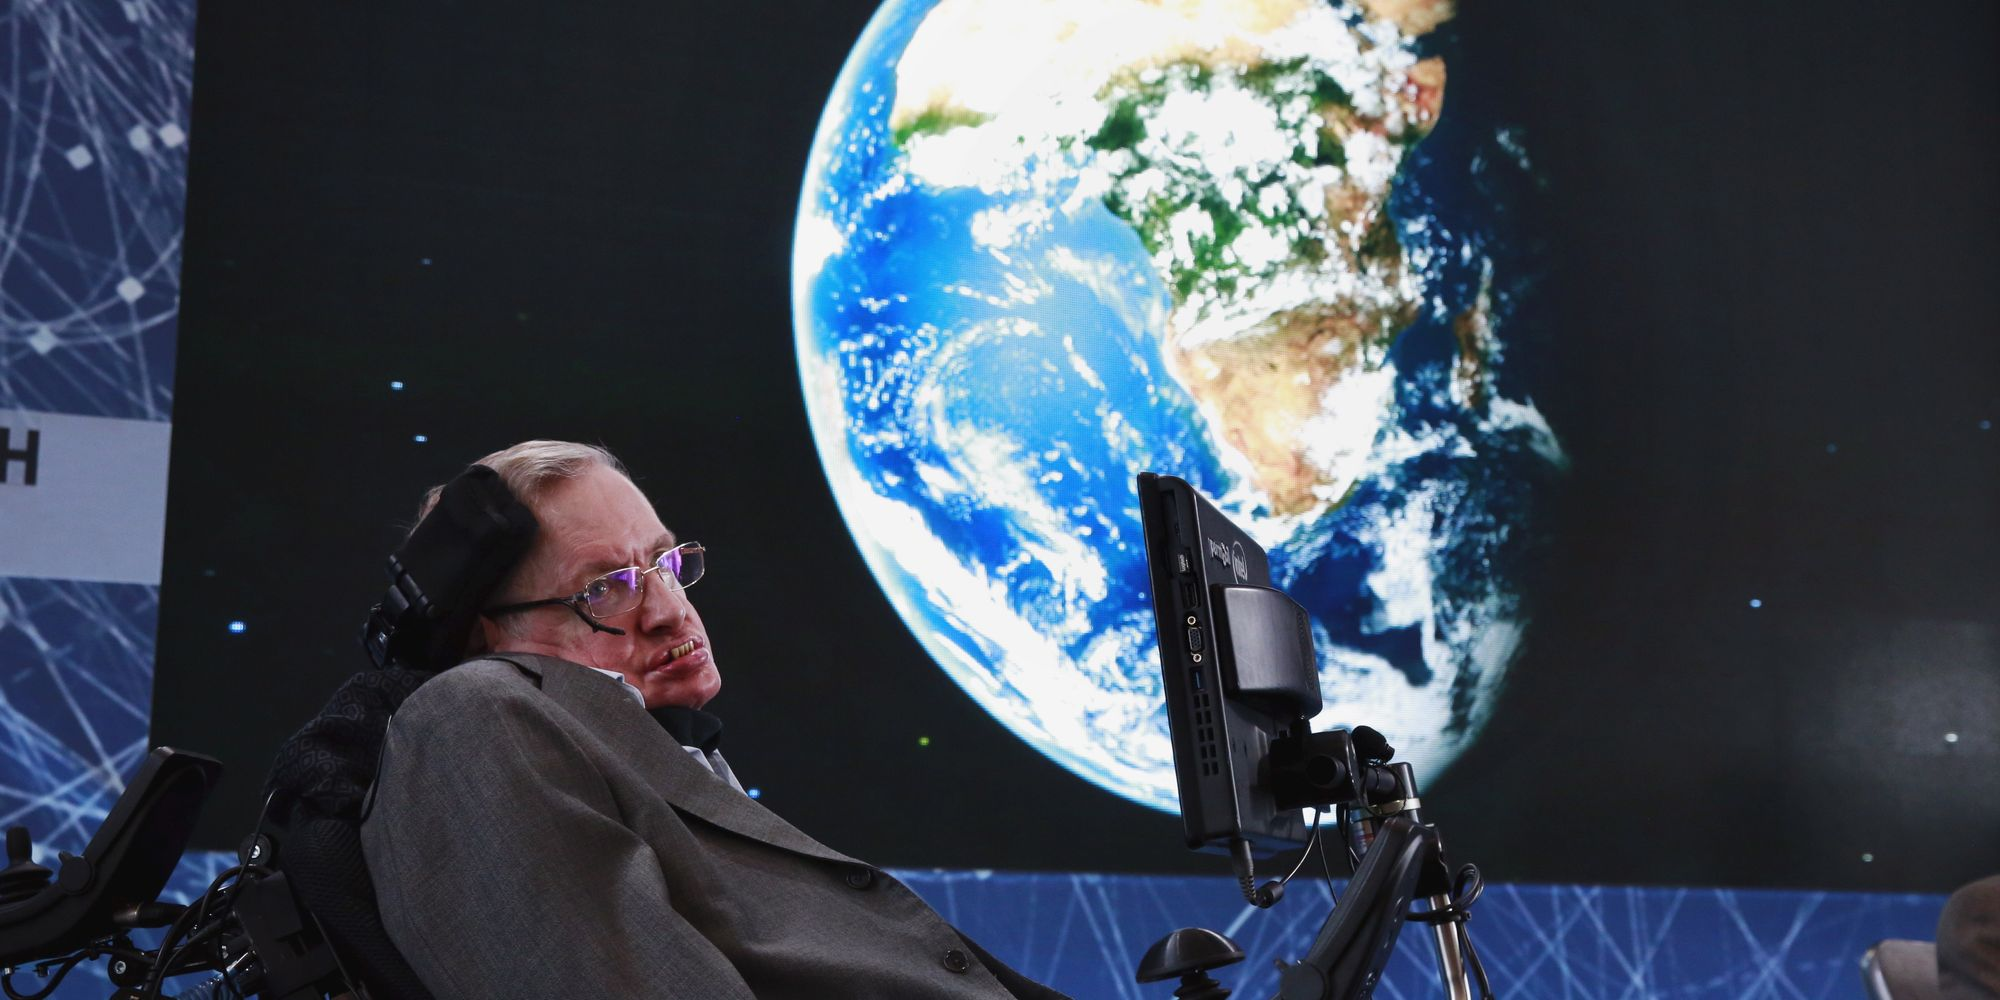 stephen hawking pictures videos breaking news if aliens call we might not want to answer says stephen hawking